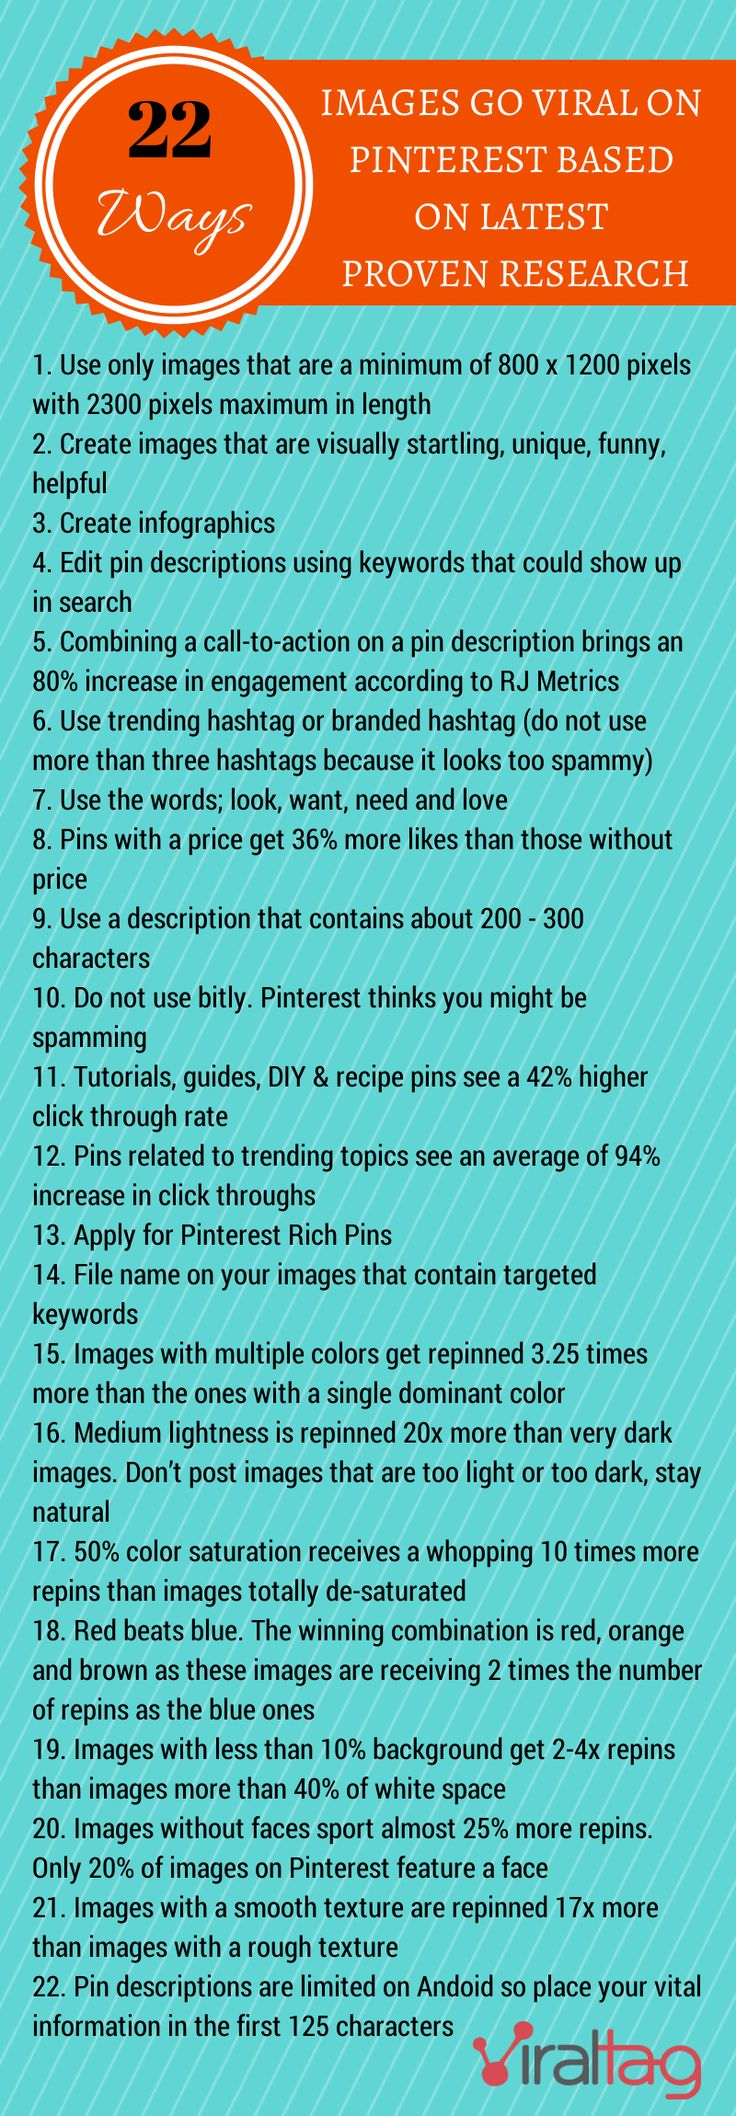 #PinterestConsultant shares 22 ways to improve your images to increase your chance of getting click thrus or even going viral based on the latest research. Go here to read the full article http://blog.viraltag.com/2014/04/06/22-ways-images-go-viral-on-pinterest-based-on-latest-proven-research/ #PinterestInfographics #PinterestForBusiness